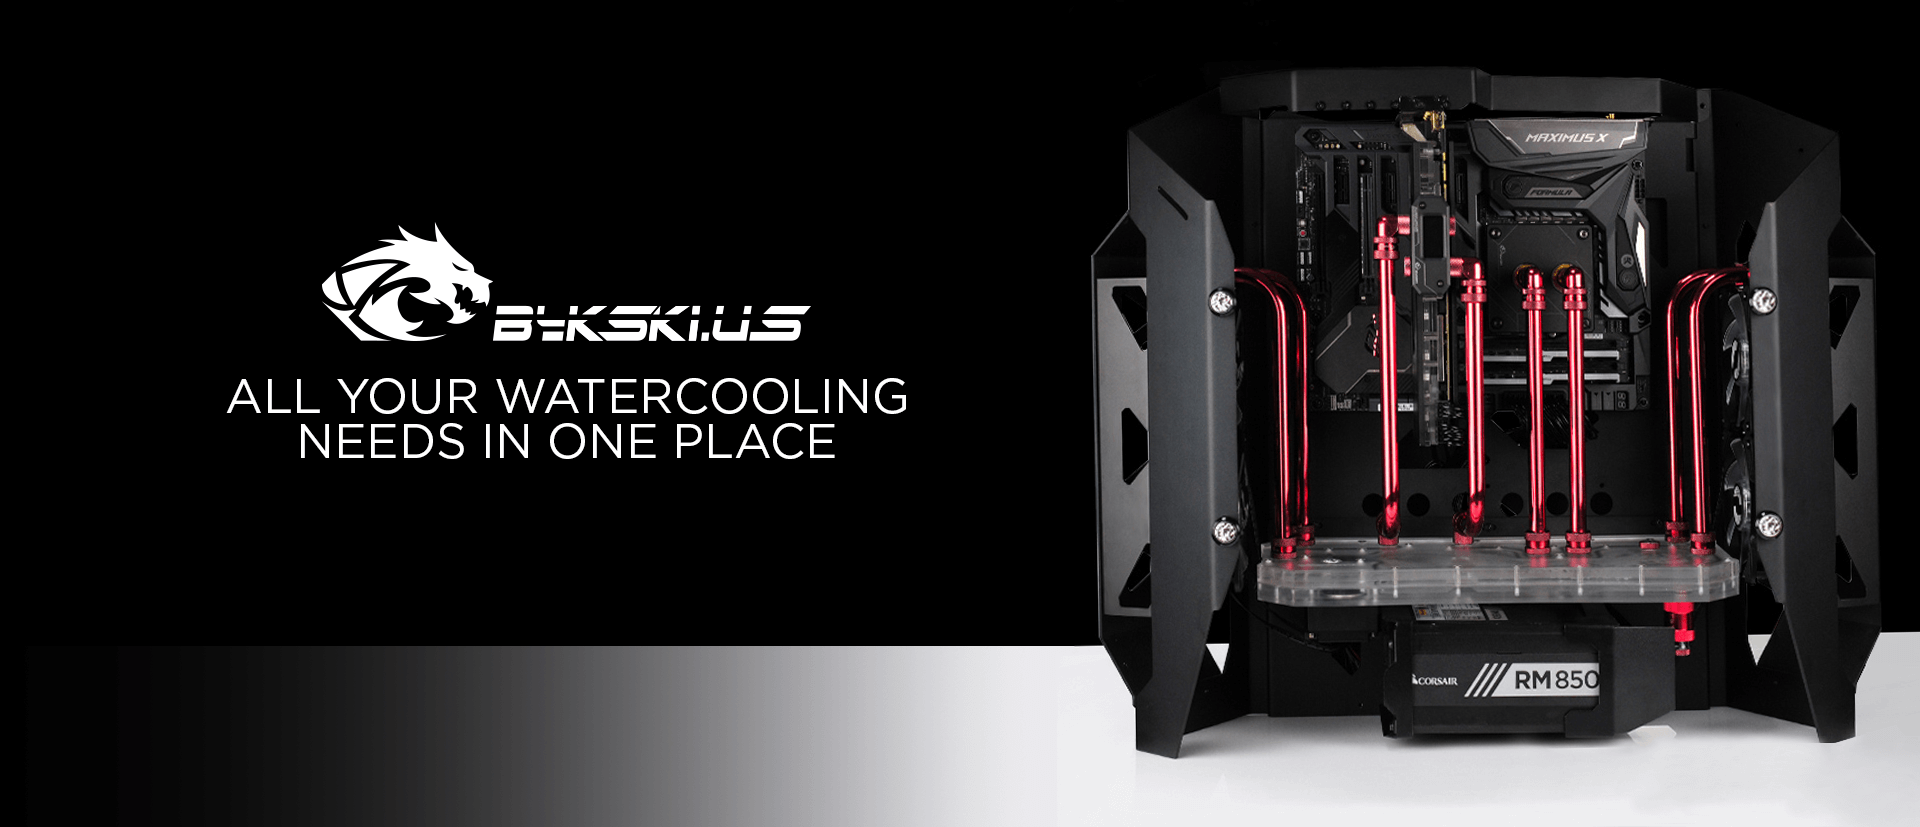 Bykski US | Quality Water Cooling | Cutting Edge Designs – BYKSKI US